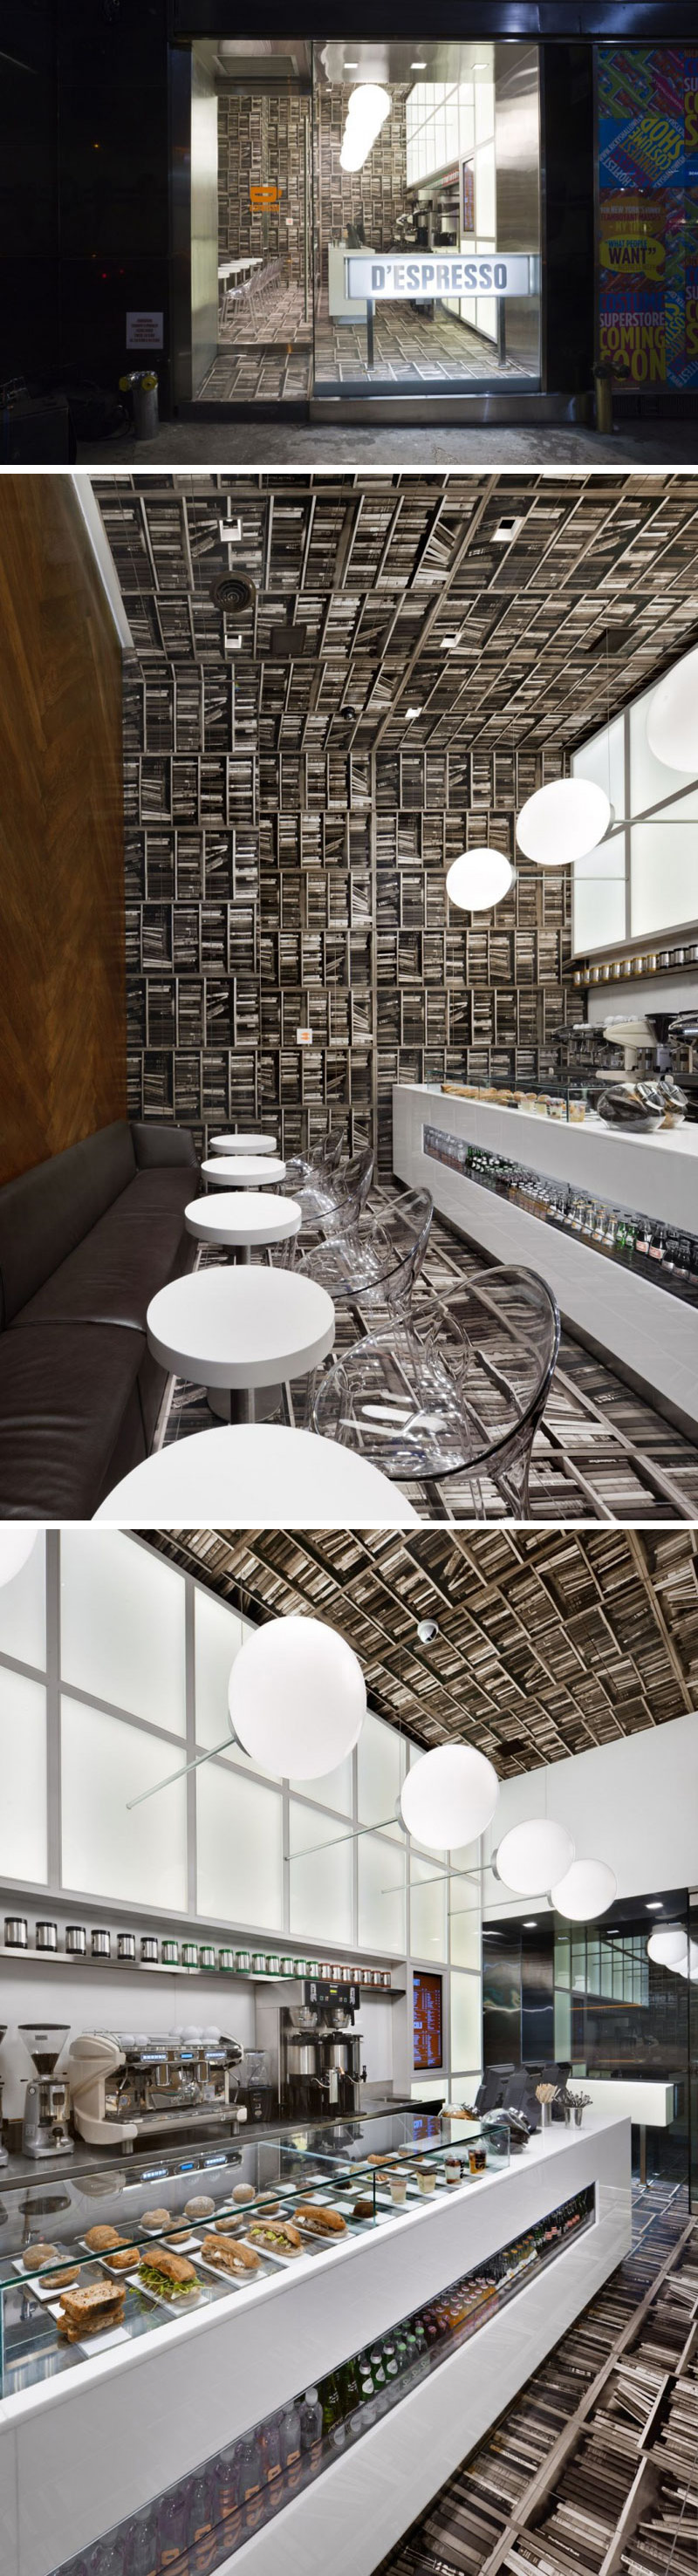 Nema Workshop designed this small modern espresso cafe in New York City to look like a library flipped on it's side - with herringbone wood walls, wallpaper on the floor, ceiling, and far wall, and light fixtures sticking out from the wall above the bar.